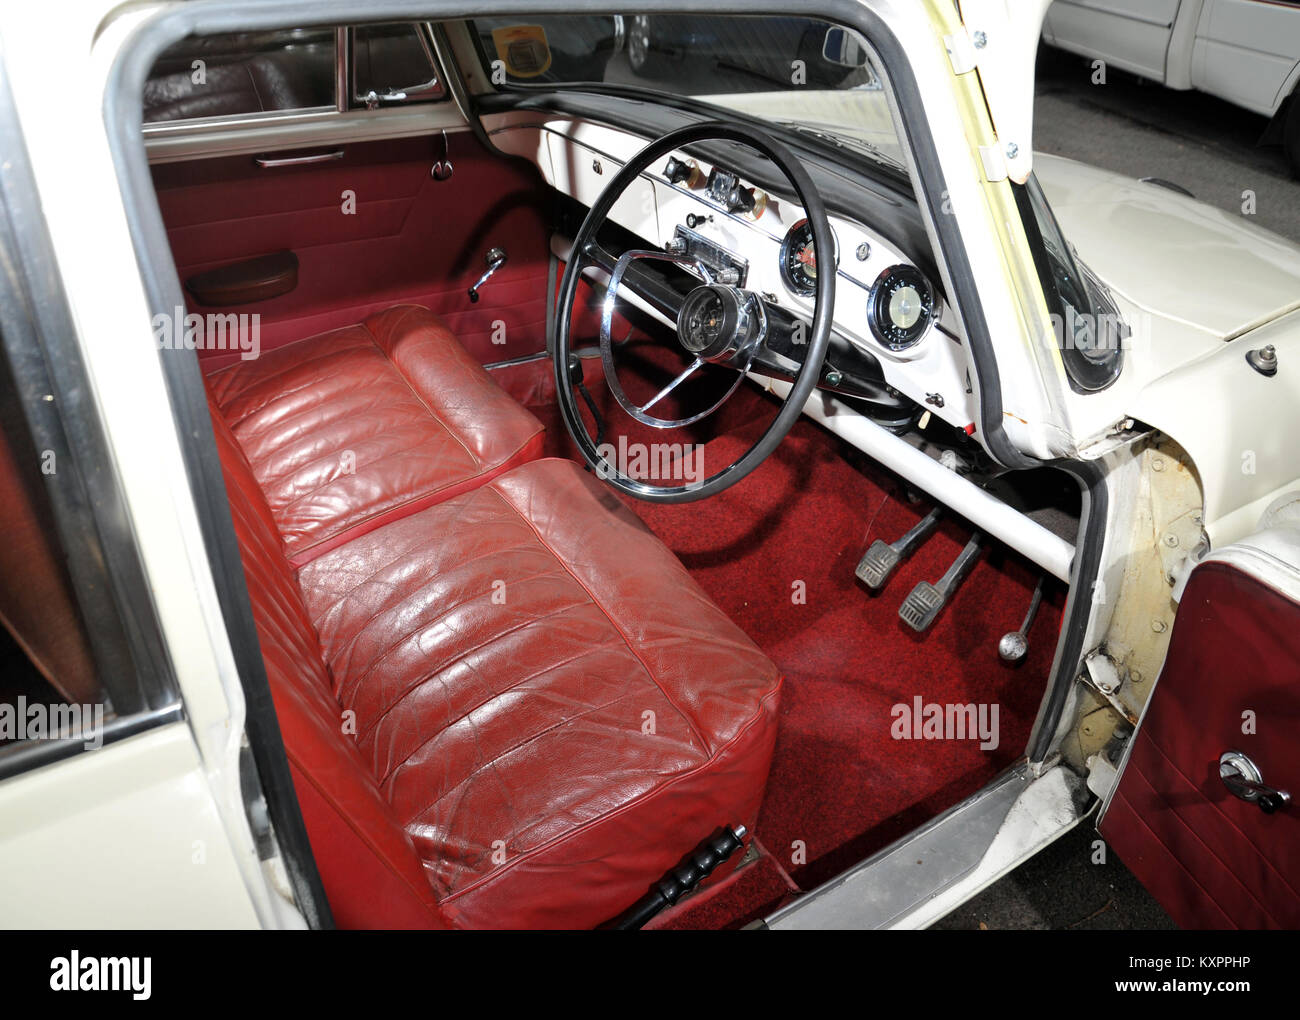 red leather seats in an austin a55 classic car interior stock photo 171375058 alamy. Black Bedroom Furniture Sets. Home Design Ideas